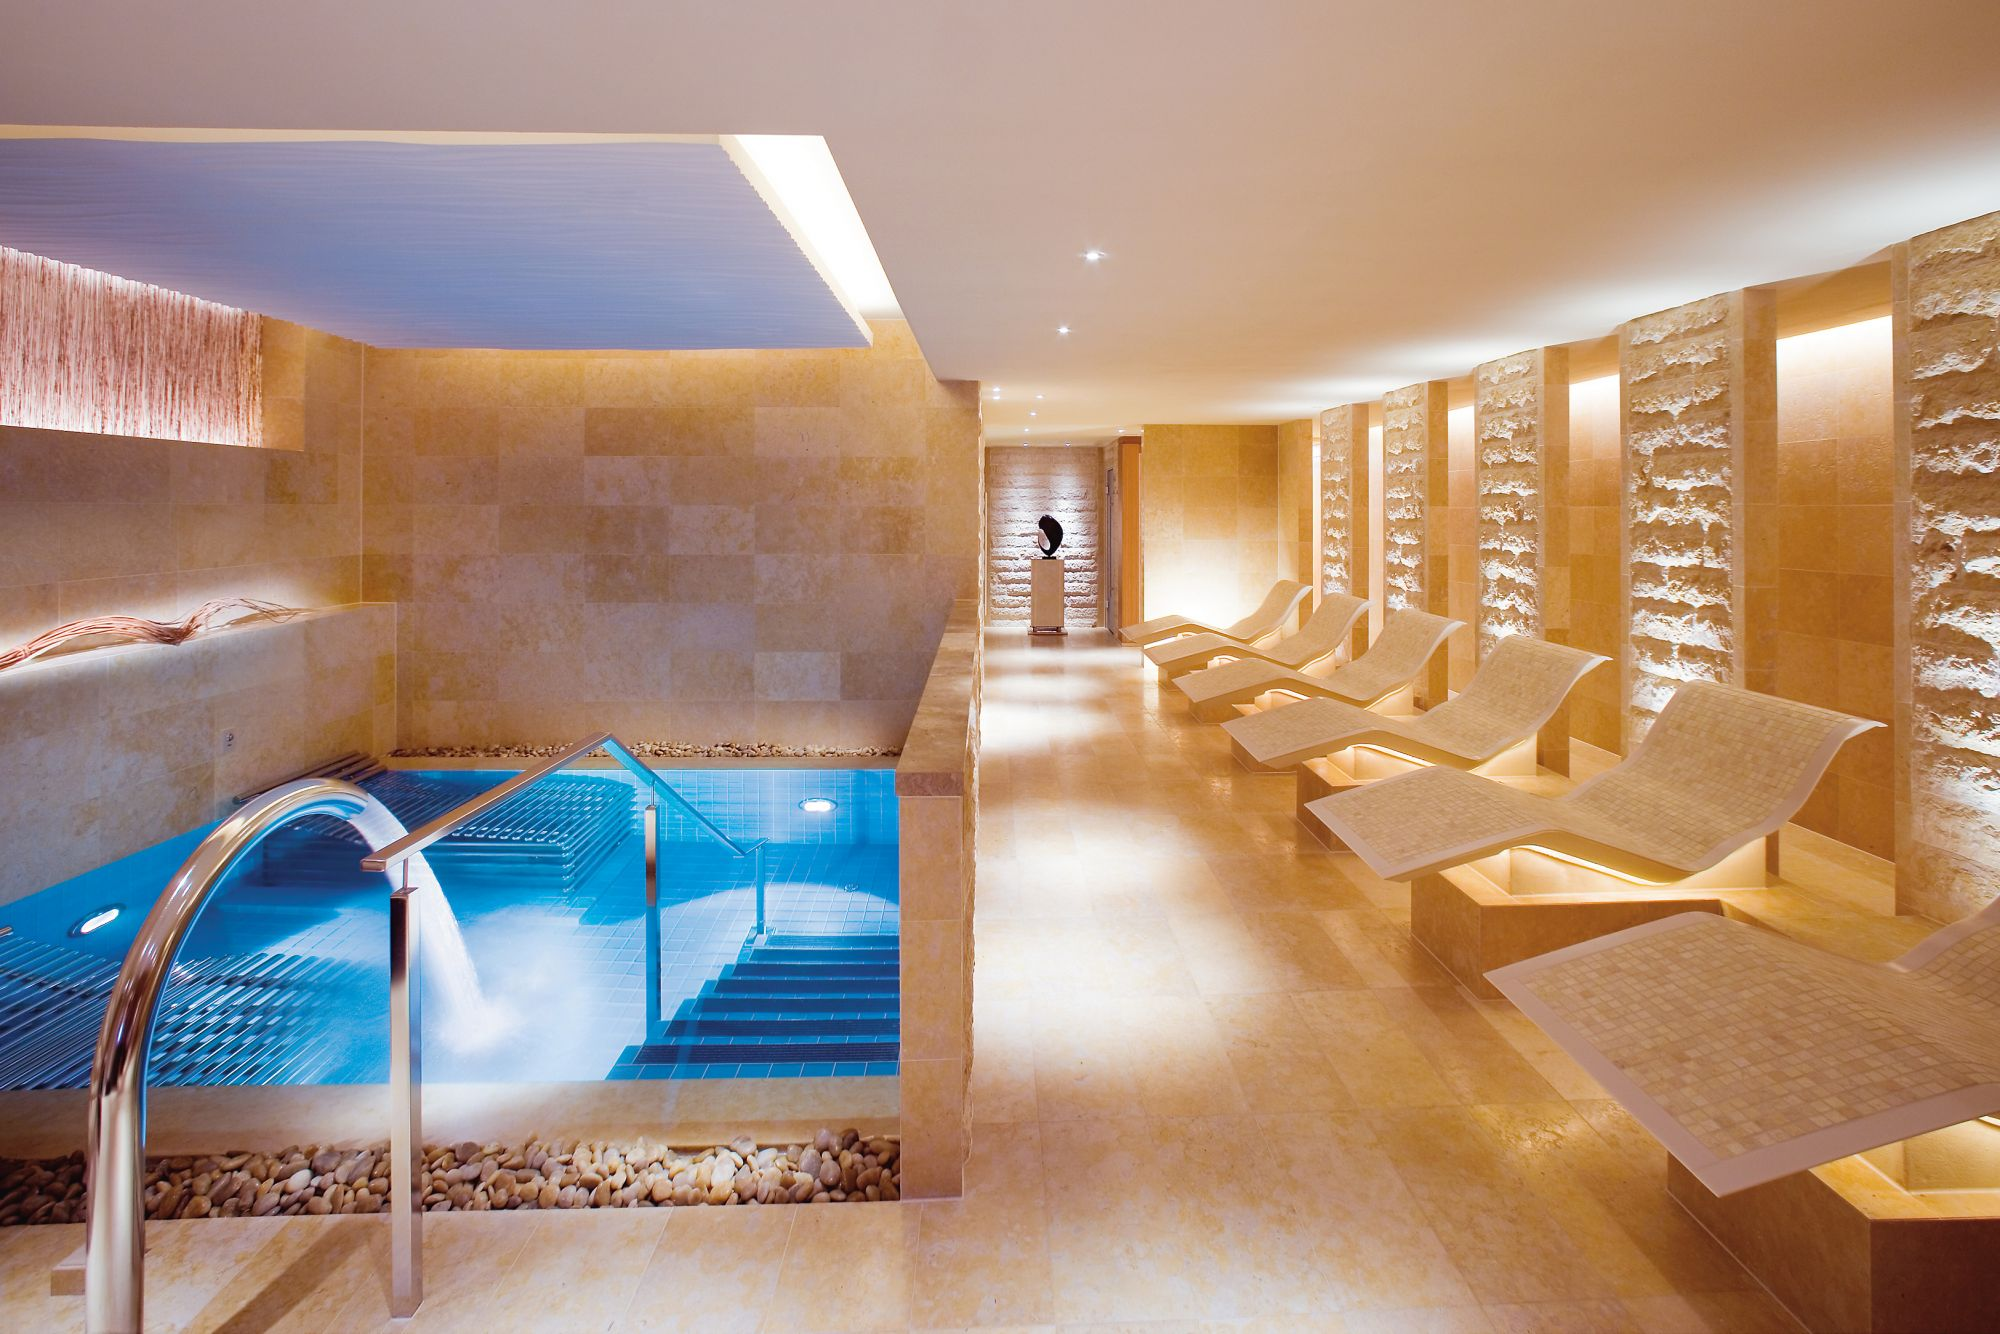 5 Places In Hong Kong To Experience Water-Based Therapy